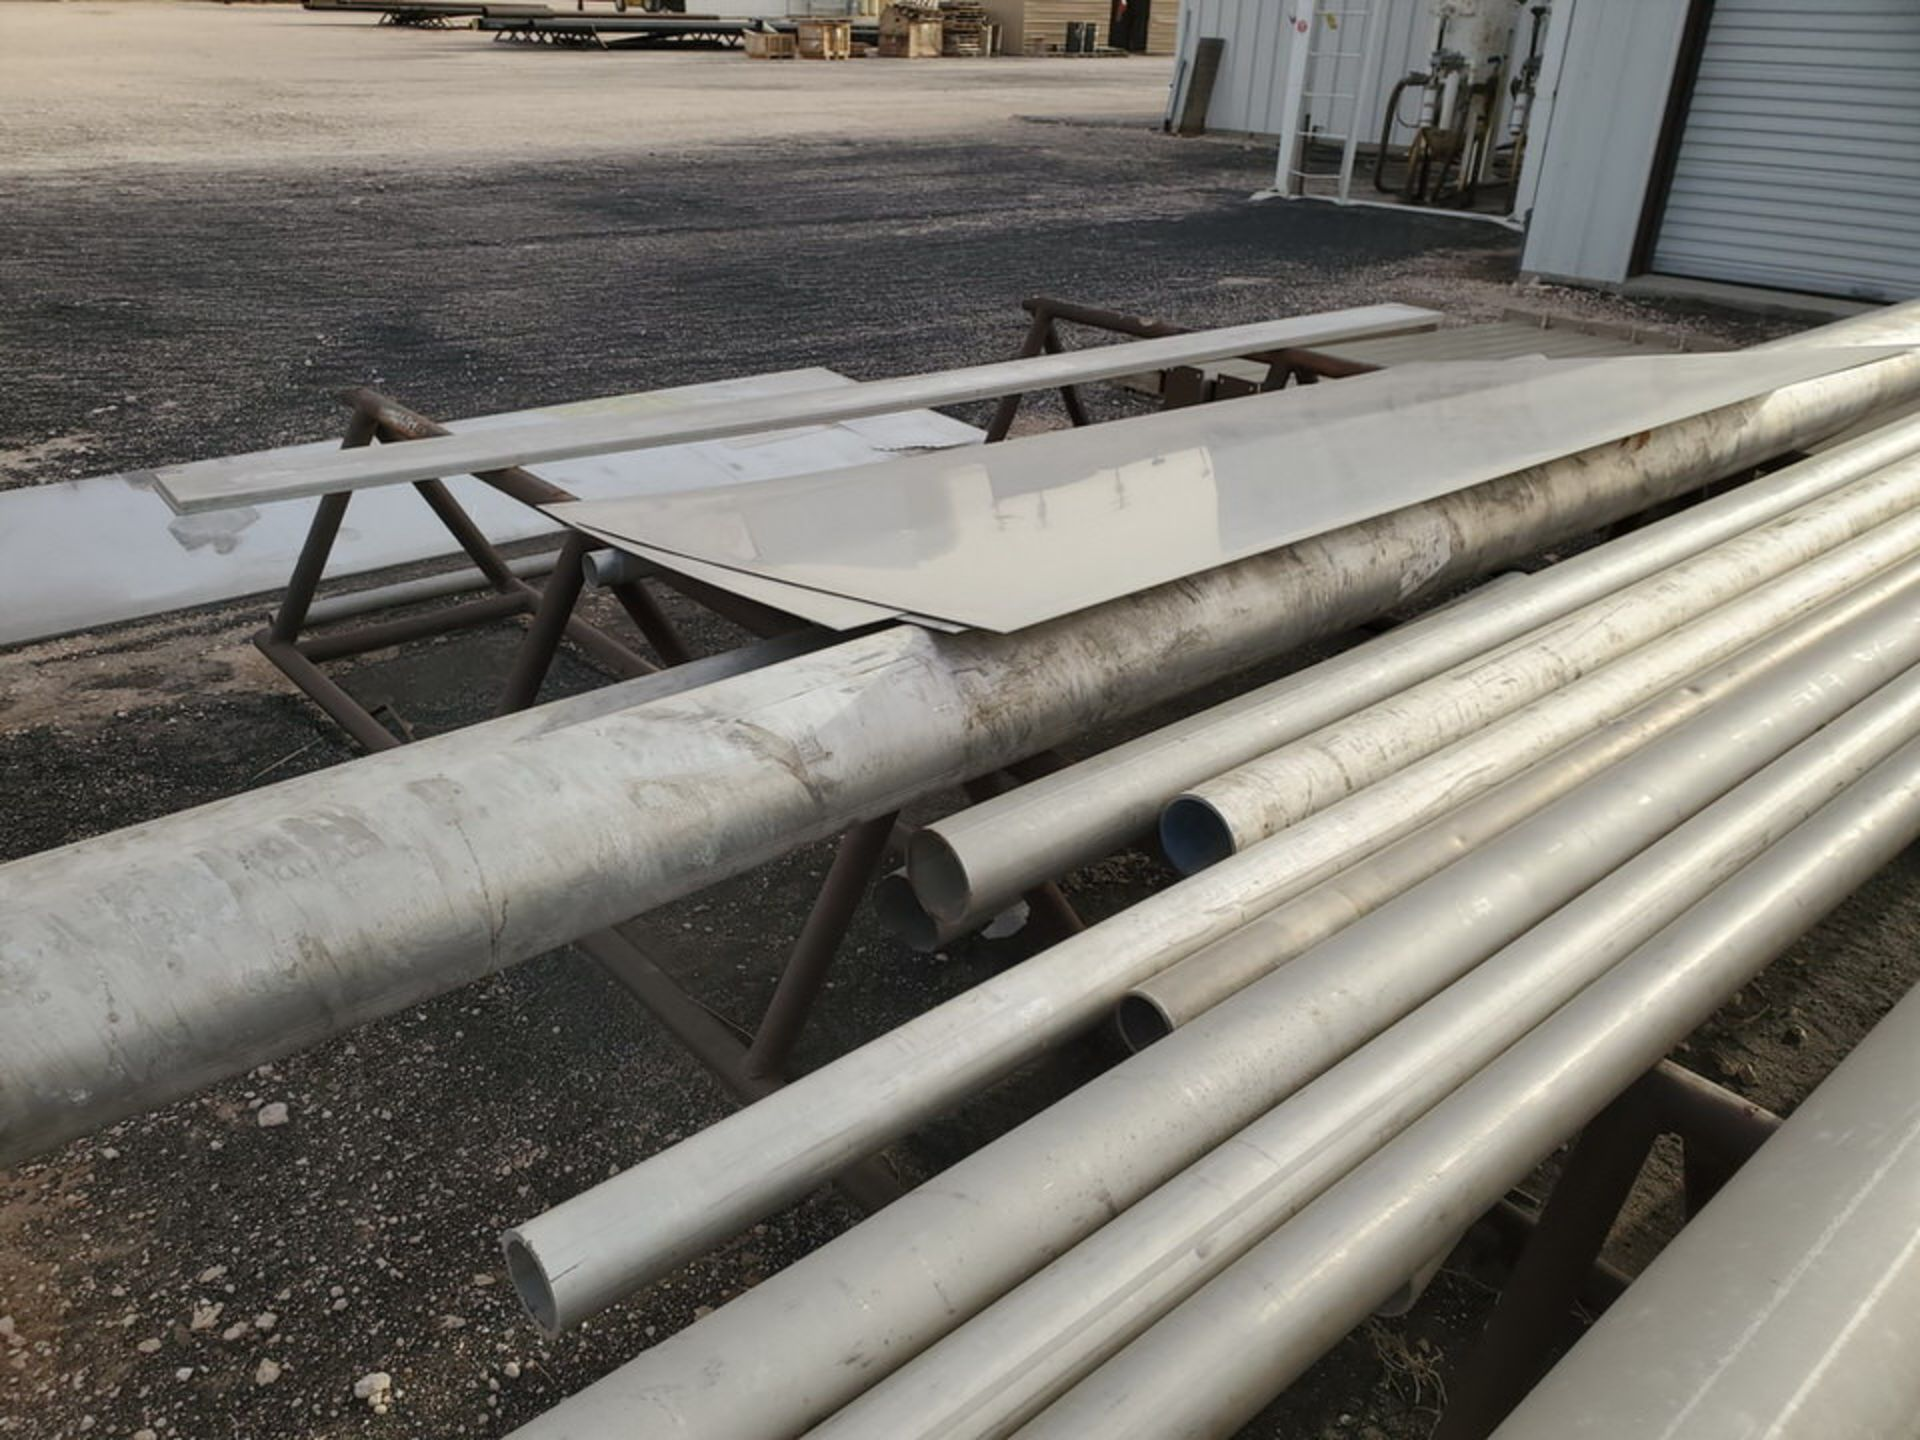 Assorted Matl. To Include But Not Limited To: S/S Flat Bar, Pipe & Sheets (Rack Excluded) - Image 10 of 22